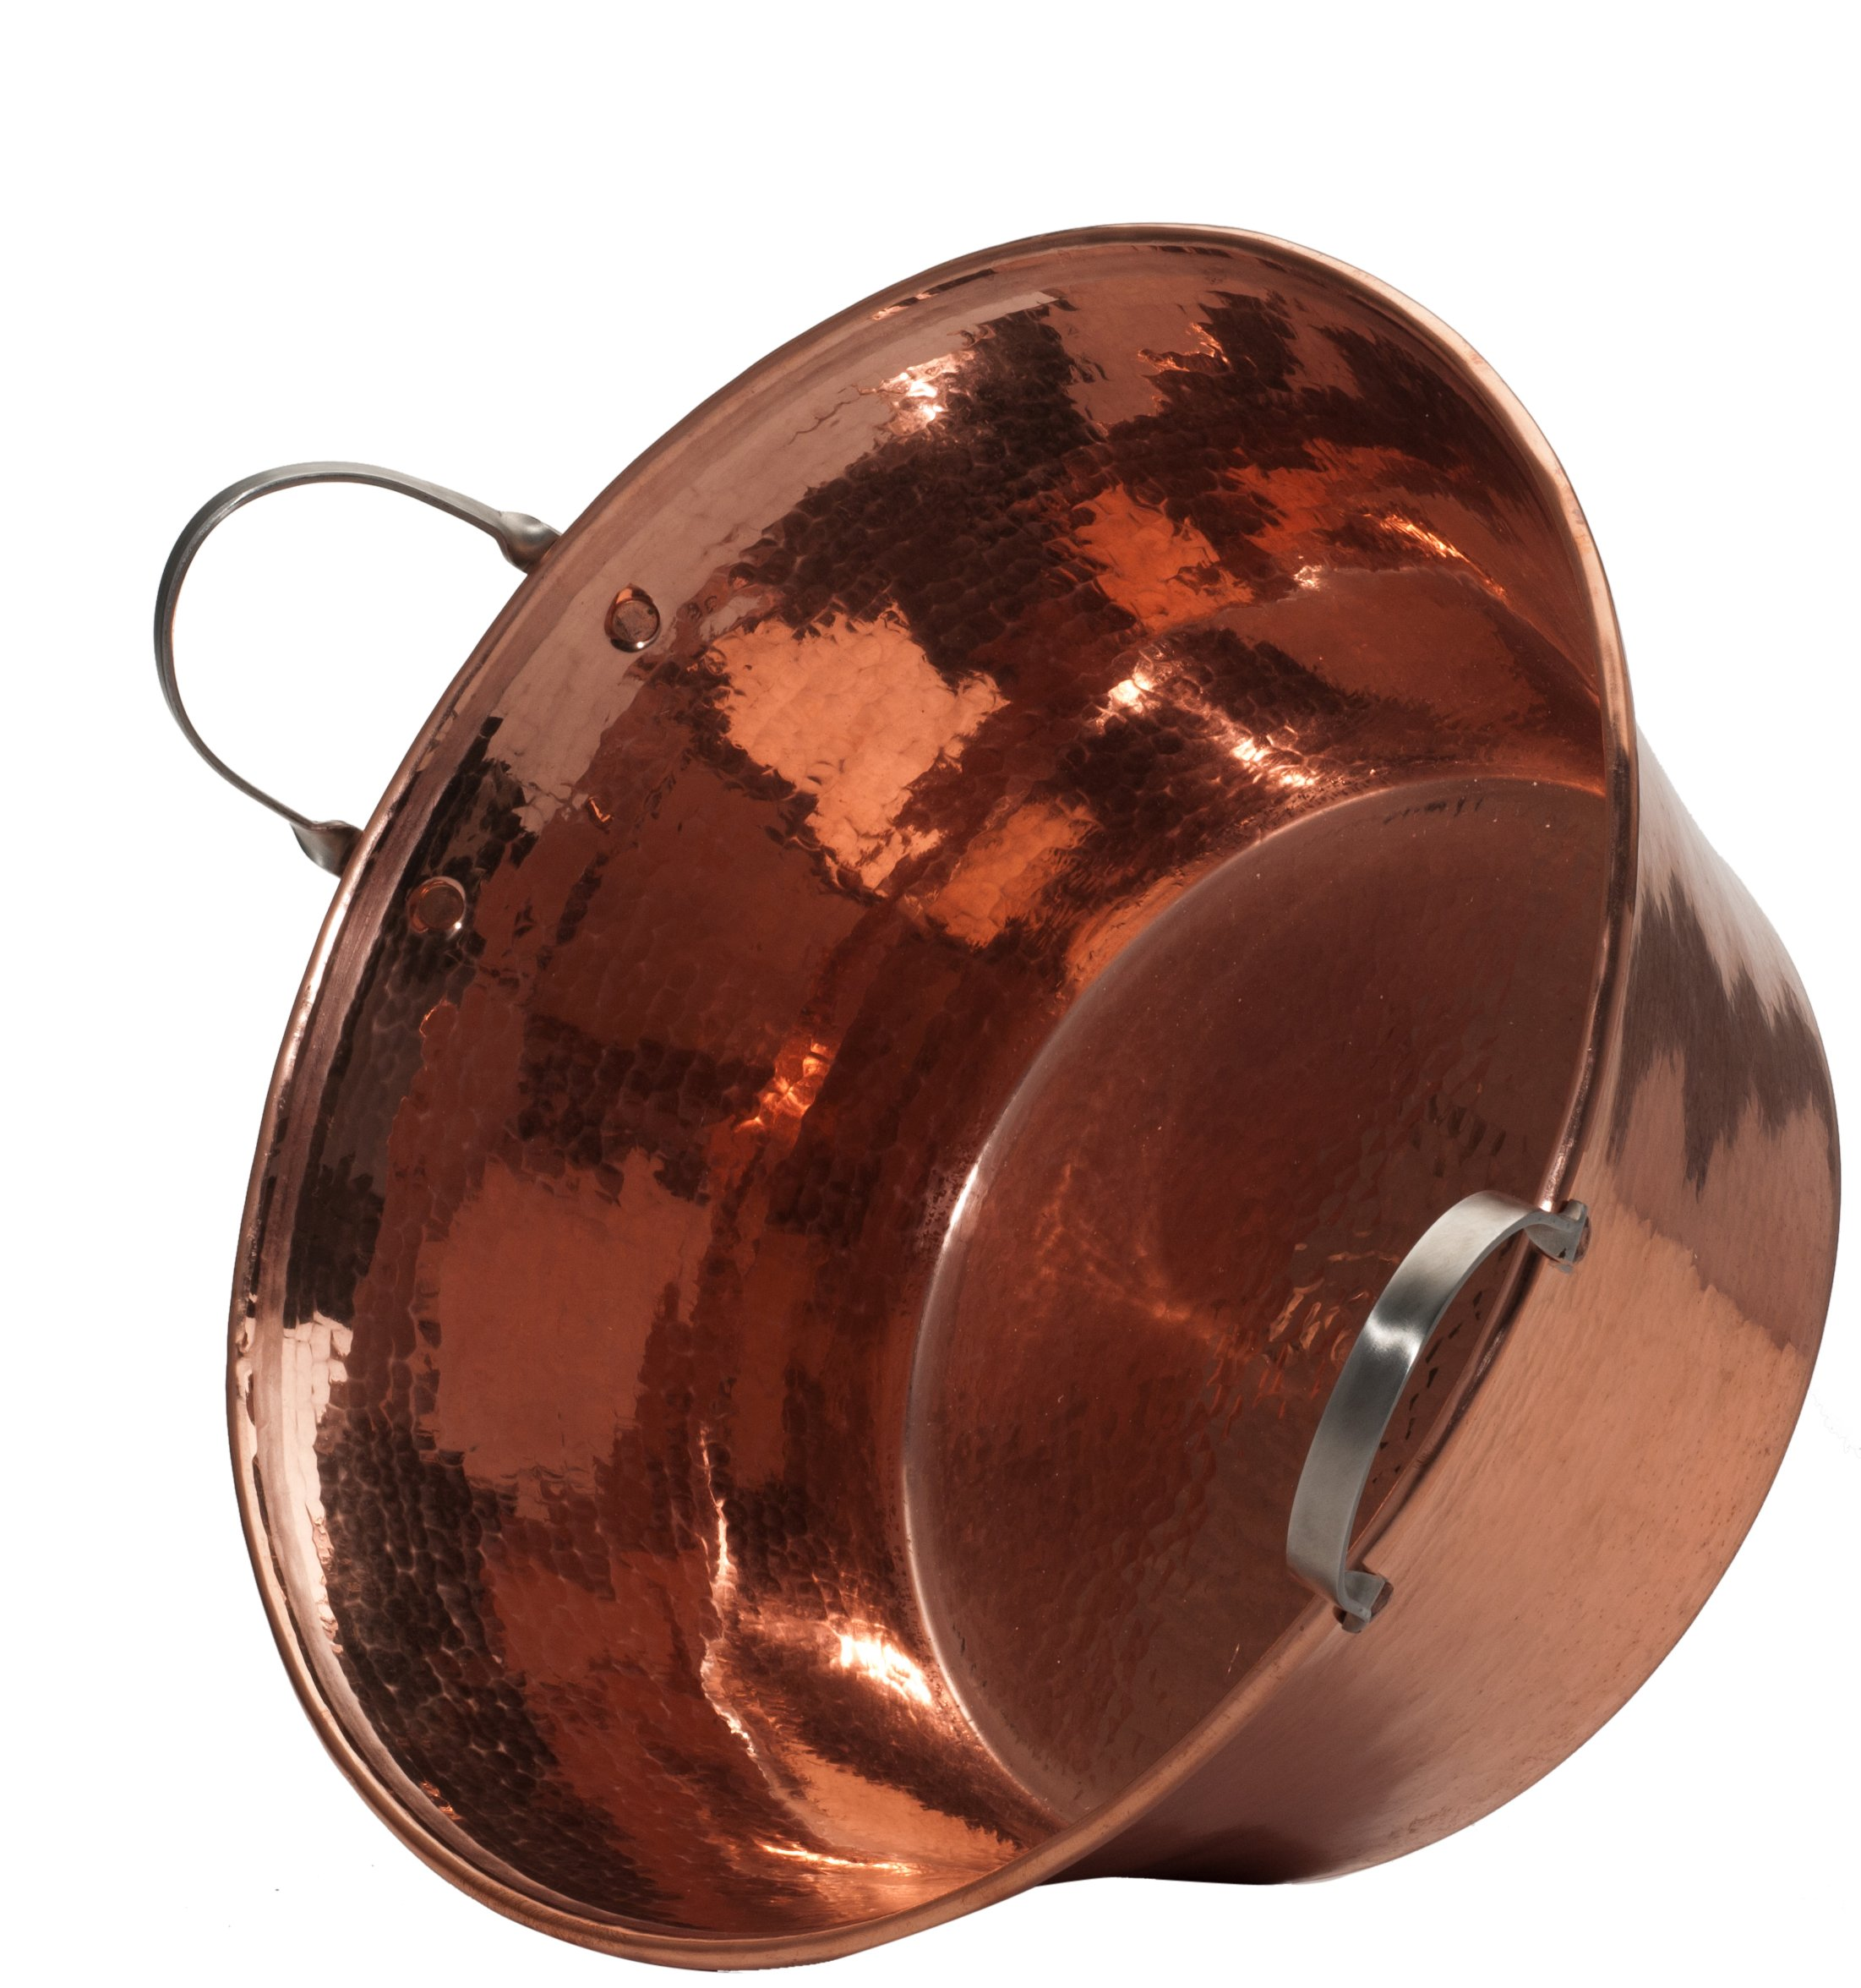 Sertodo Copper, Hand Hammered 100% Pure Copper, Permian Basin with Stainless Steel Handles, 15 inch by 7 inch high